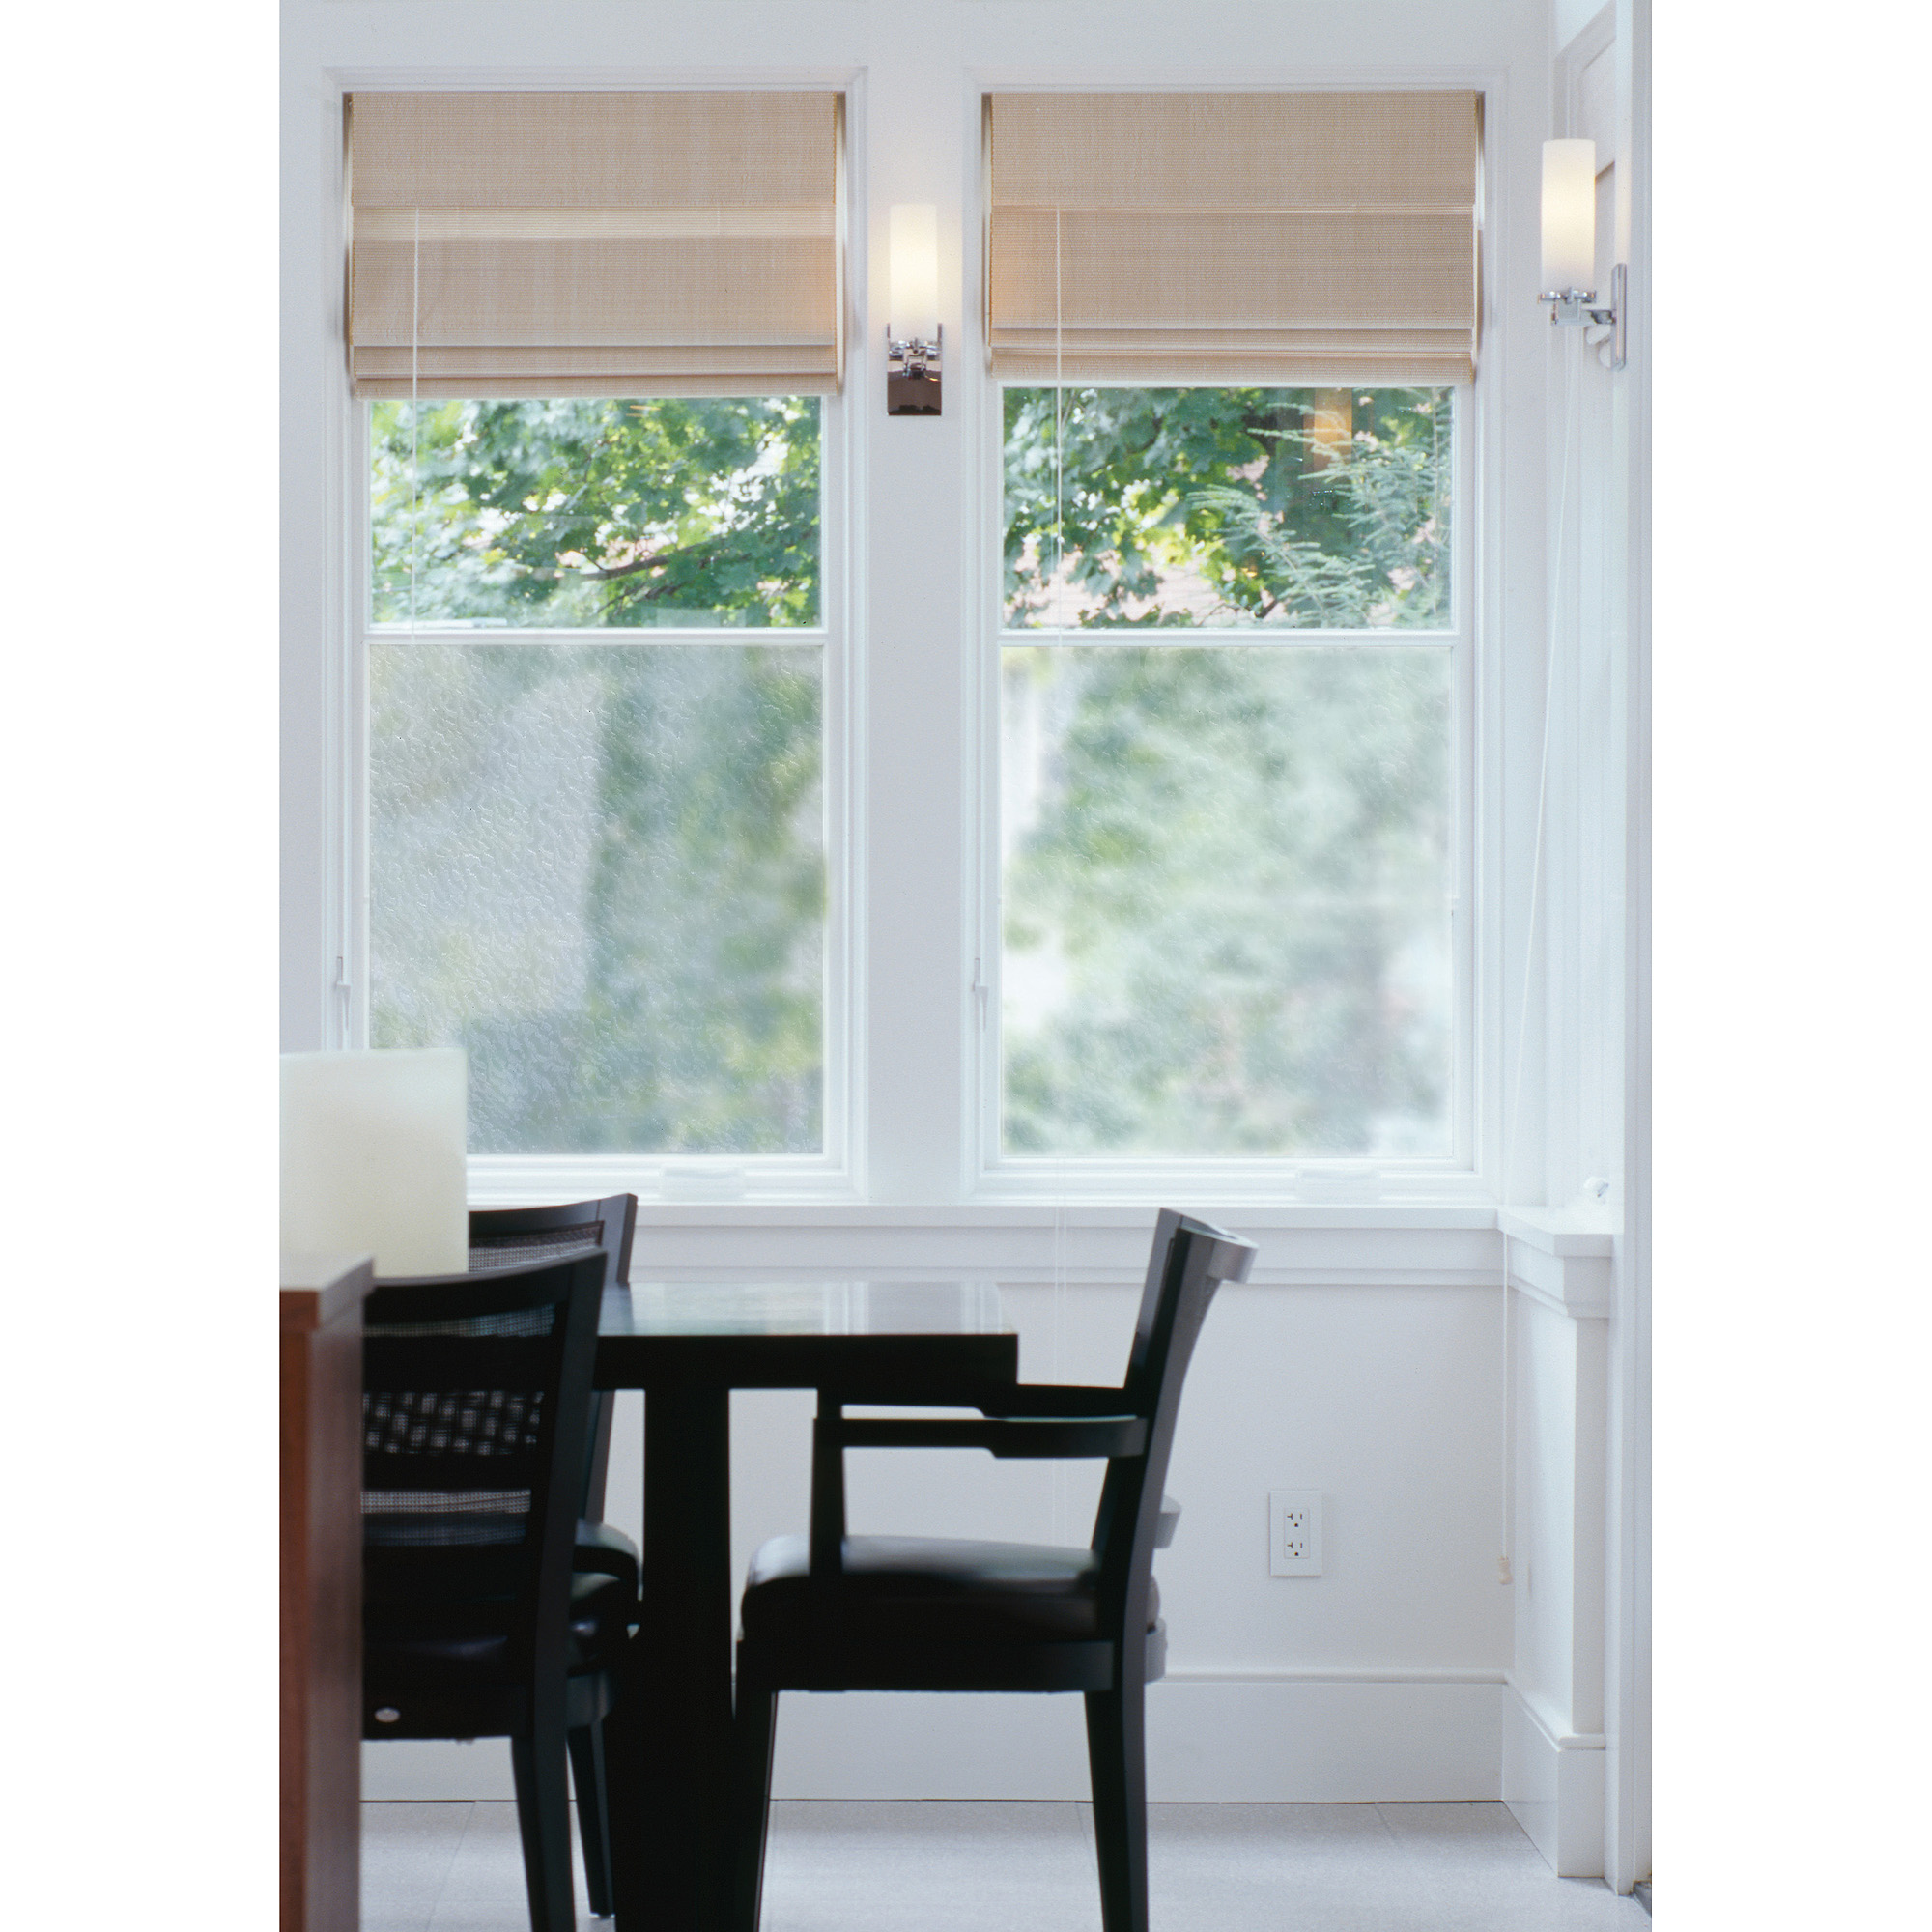 Brewster Moire Peel and Stick Window Film